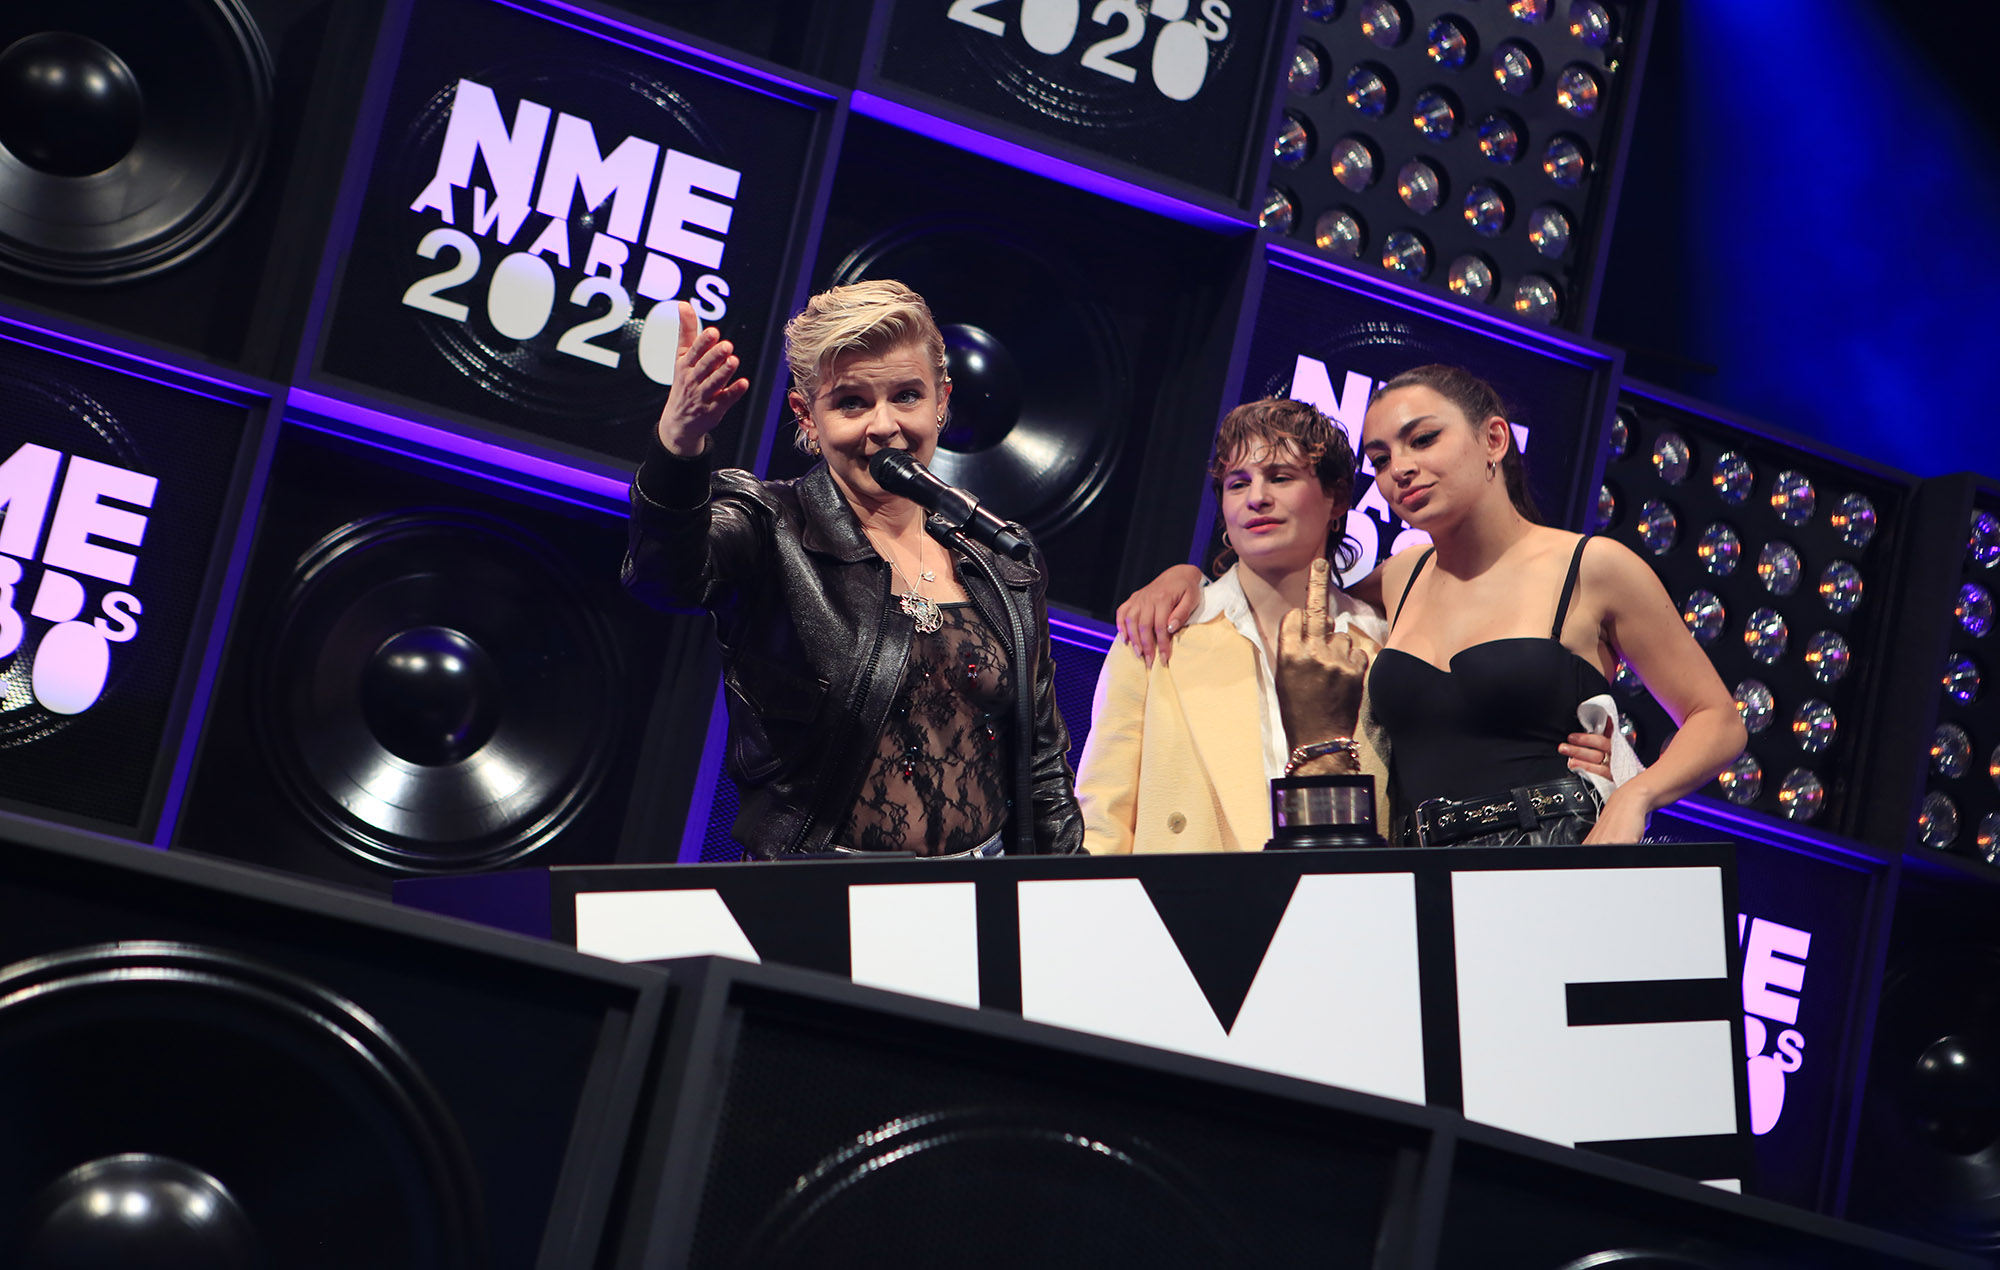 Robyn accepts her award for Songwriter of the Decade